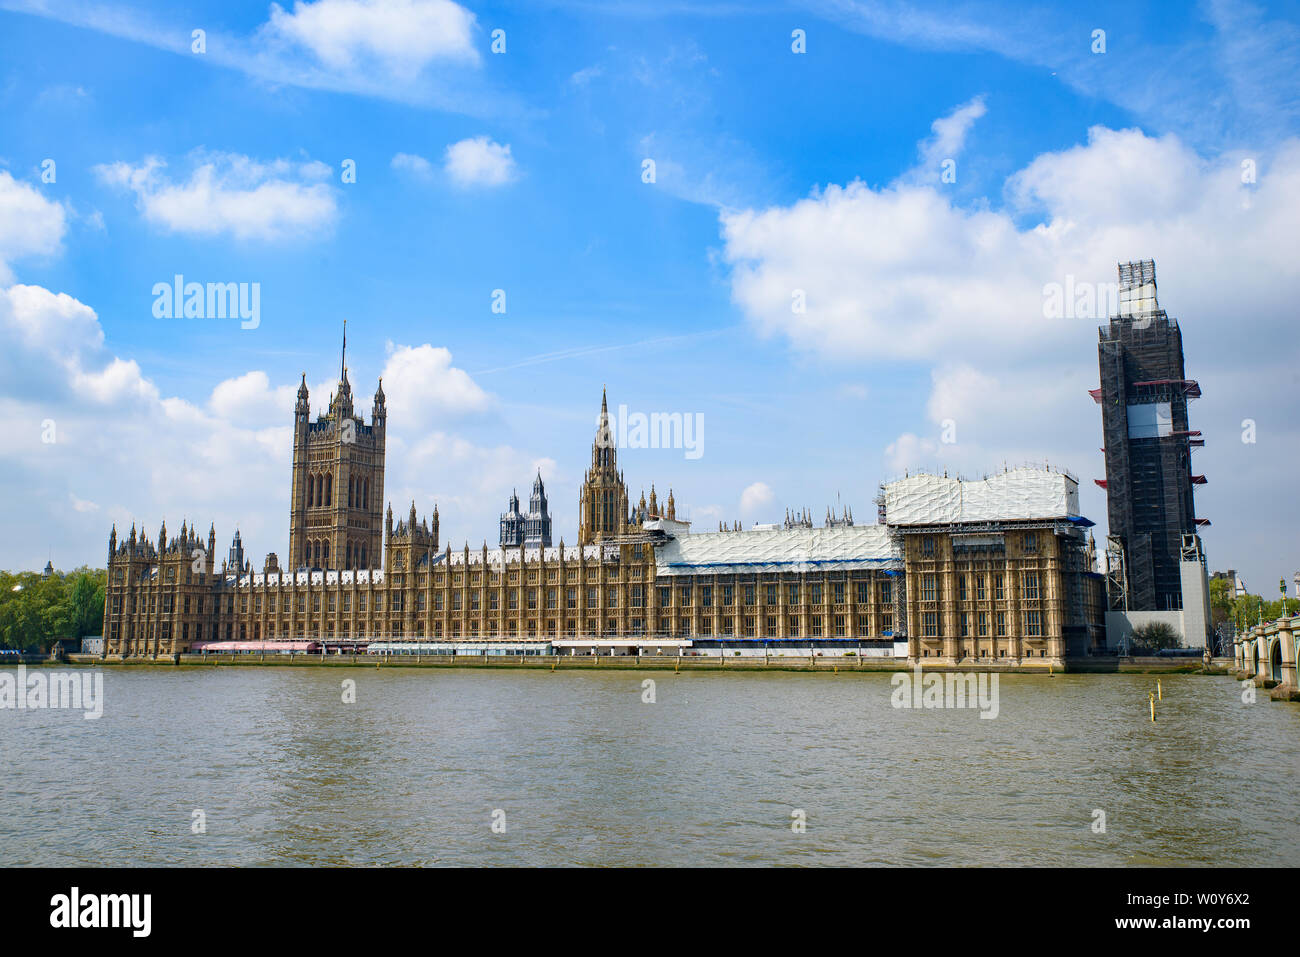 The Palace of Westminster as the Houses of Parliament on the north bank of the River Thames in London, United Kingdom Stock Photo